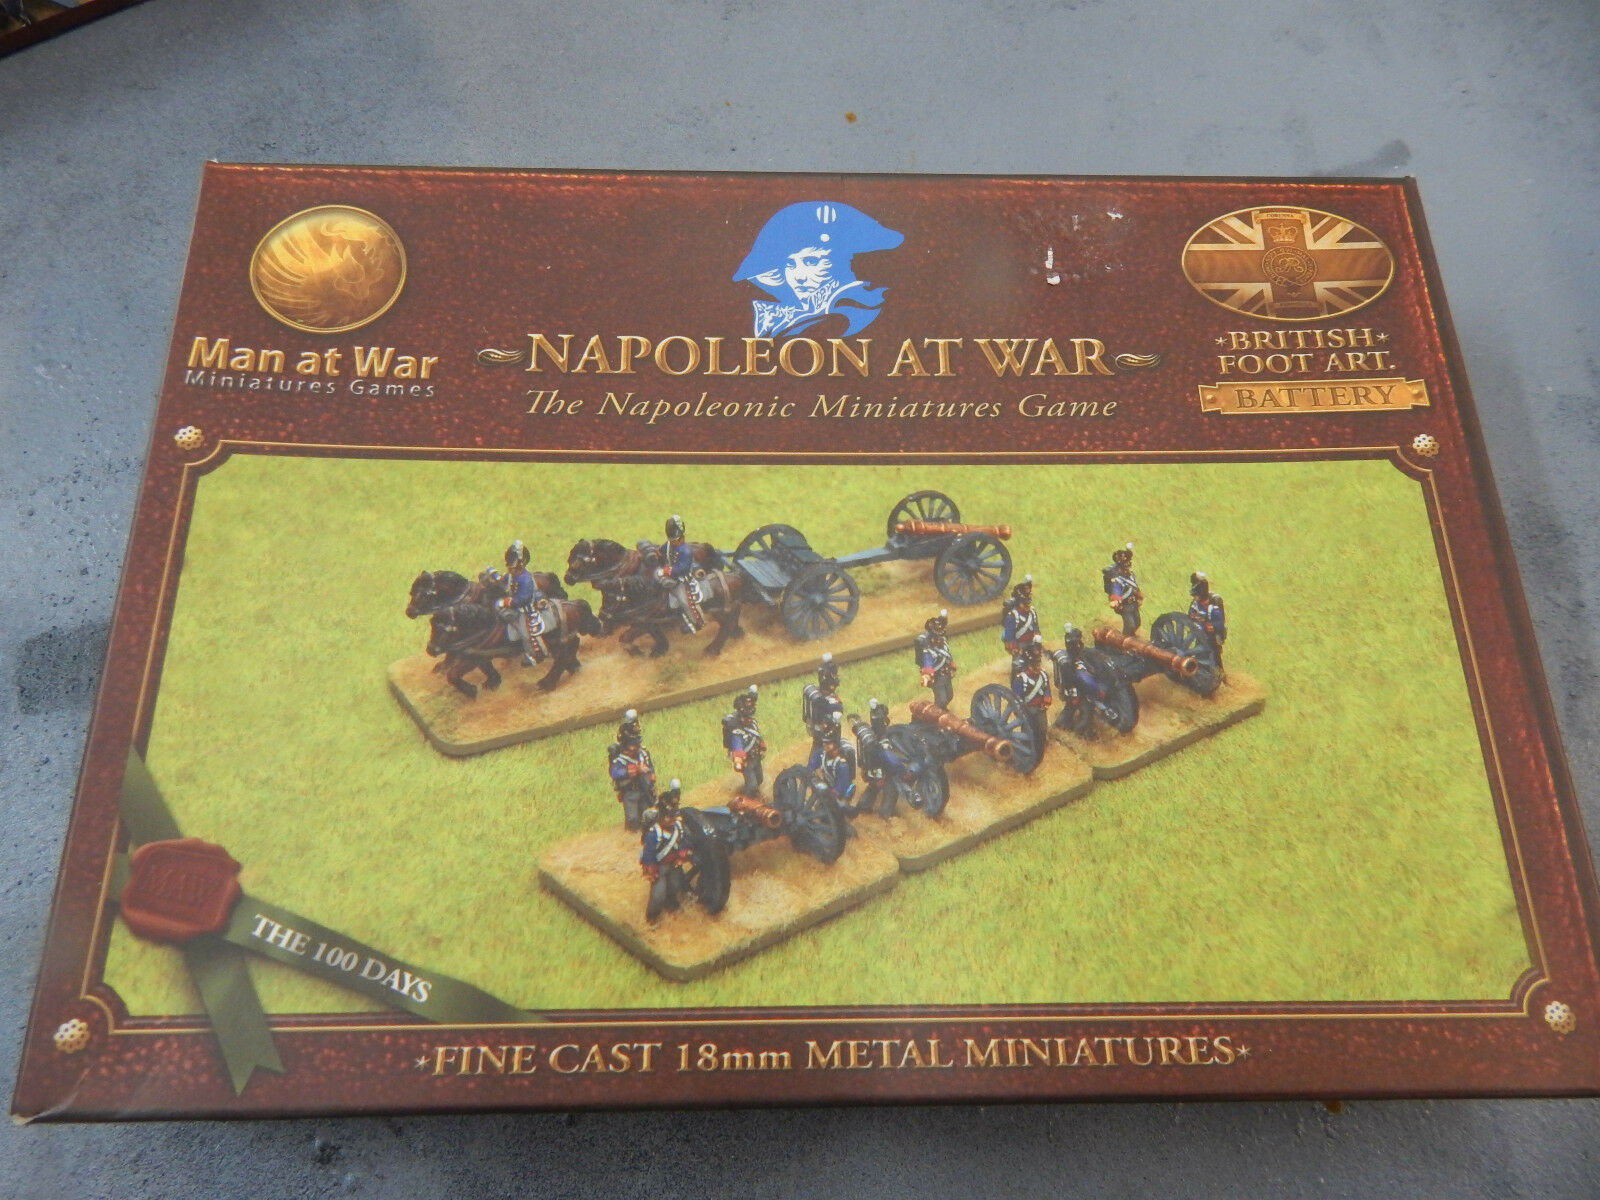 18mm metal boxed Napoleonic British Foot Artillery